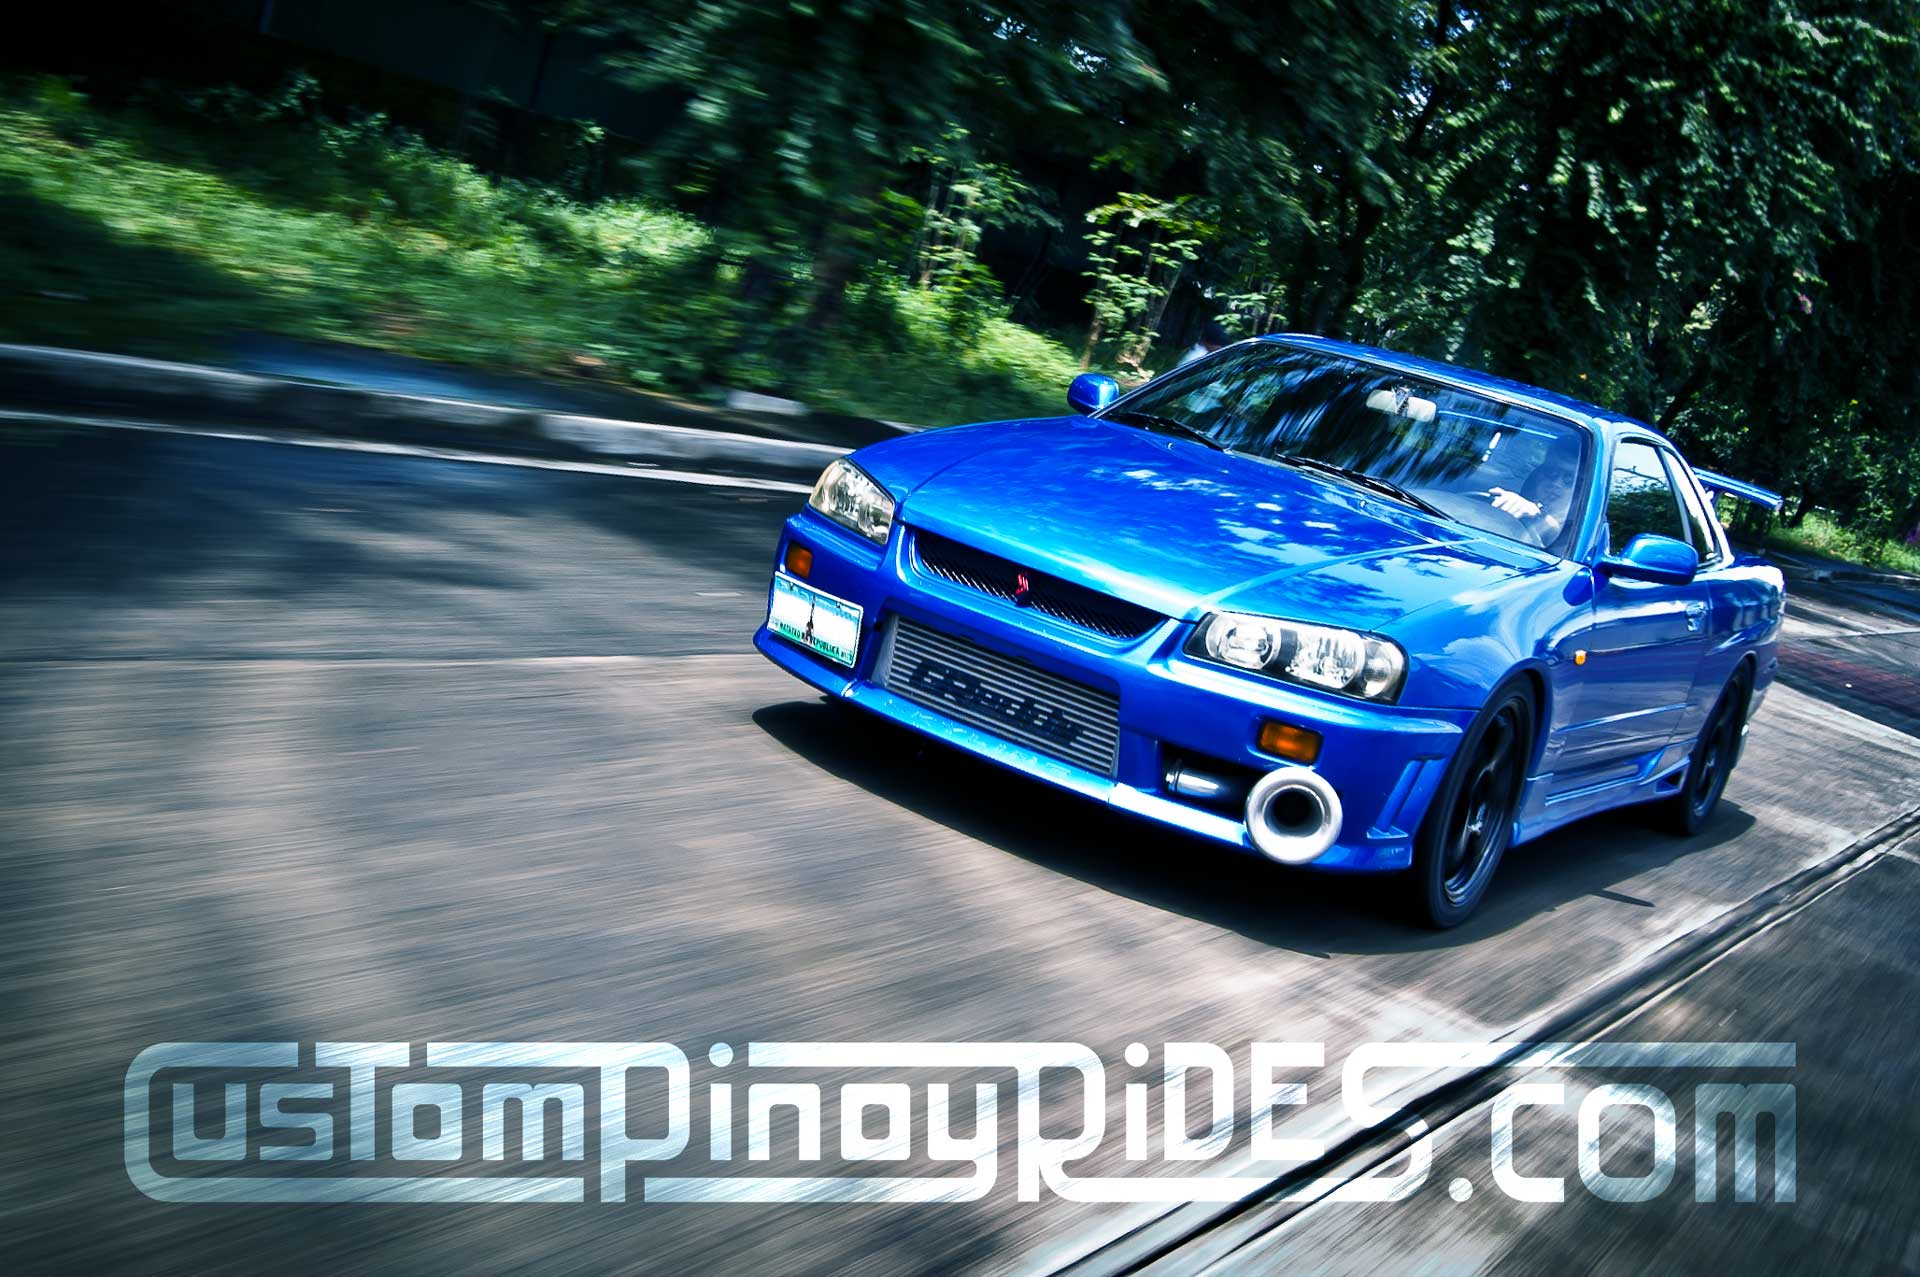 Nissan Skyline R34 Rolling Shot Custom Pinoy Rides Car Photography Manila Philippines